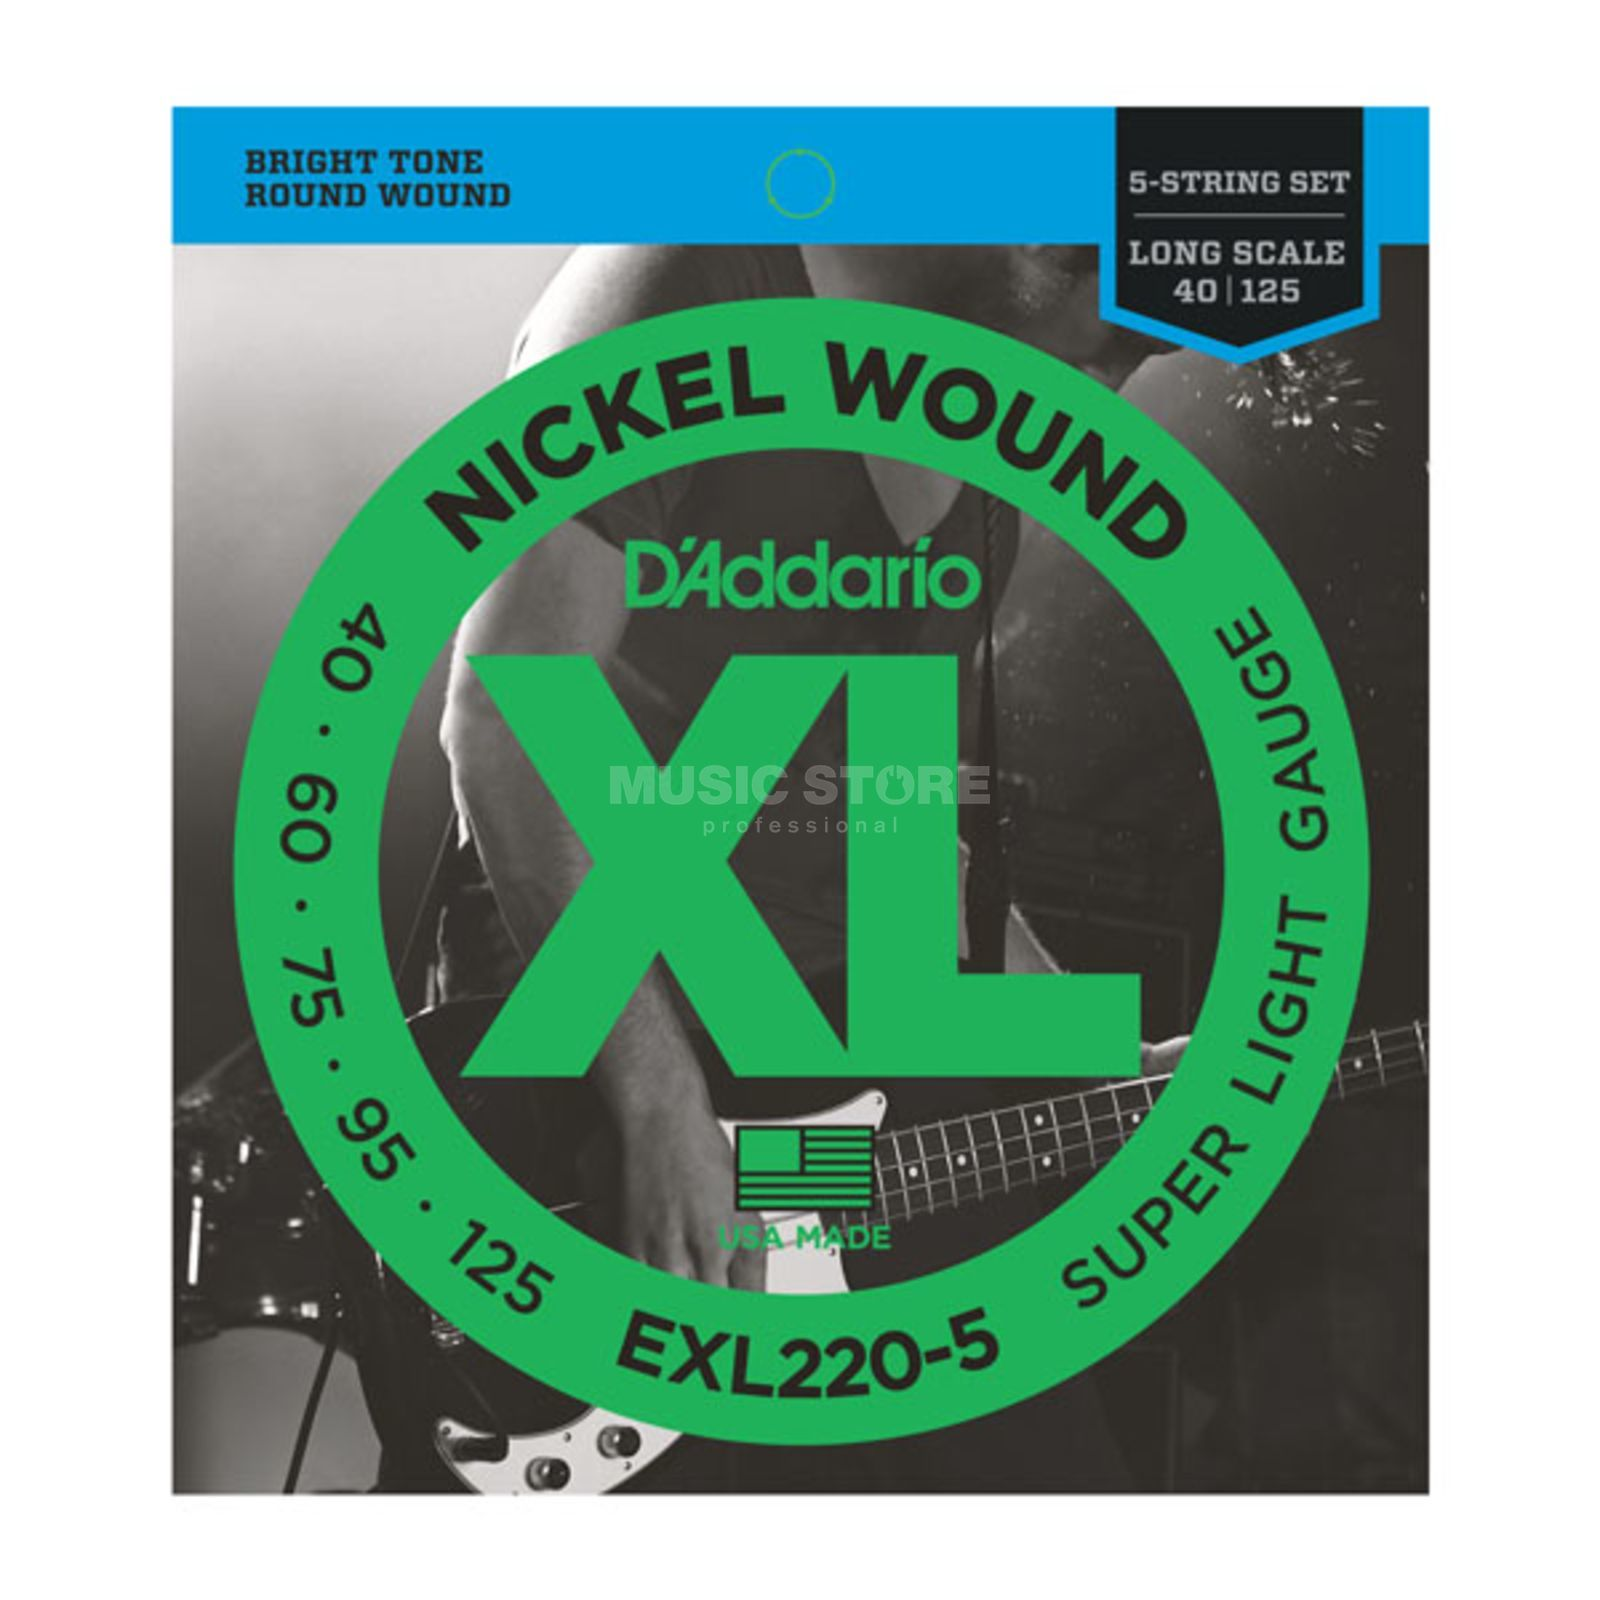 D'Addario Bass Strings XL Nickel 40-125 40-60-75-95-125, EXL220-5 Изображение товара